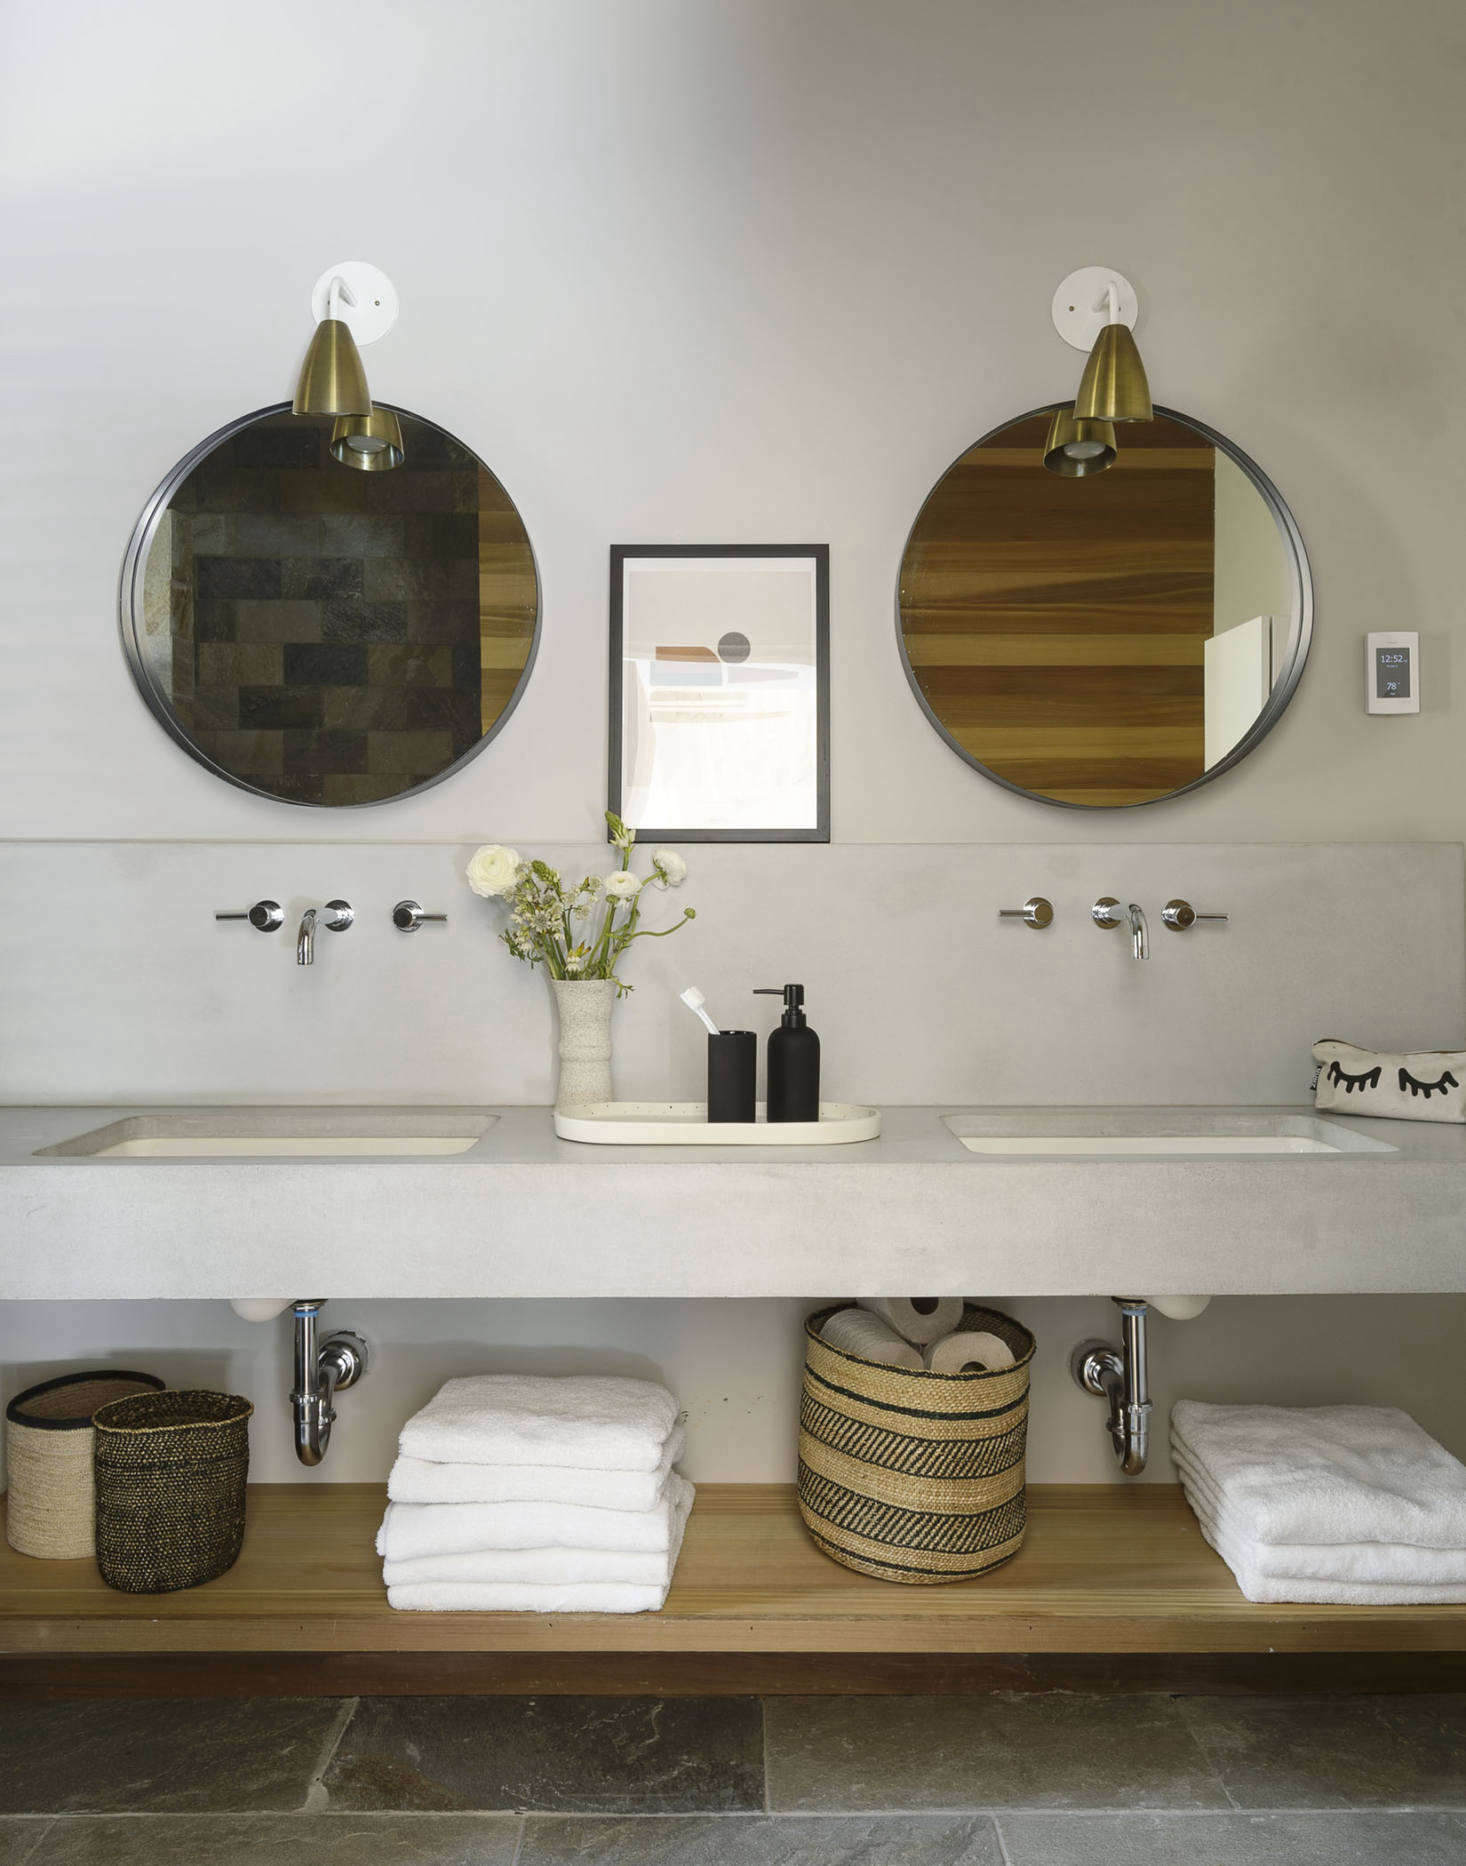 The double sink in the master bath was custom-made using fiber-reinforced concrete.